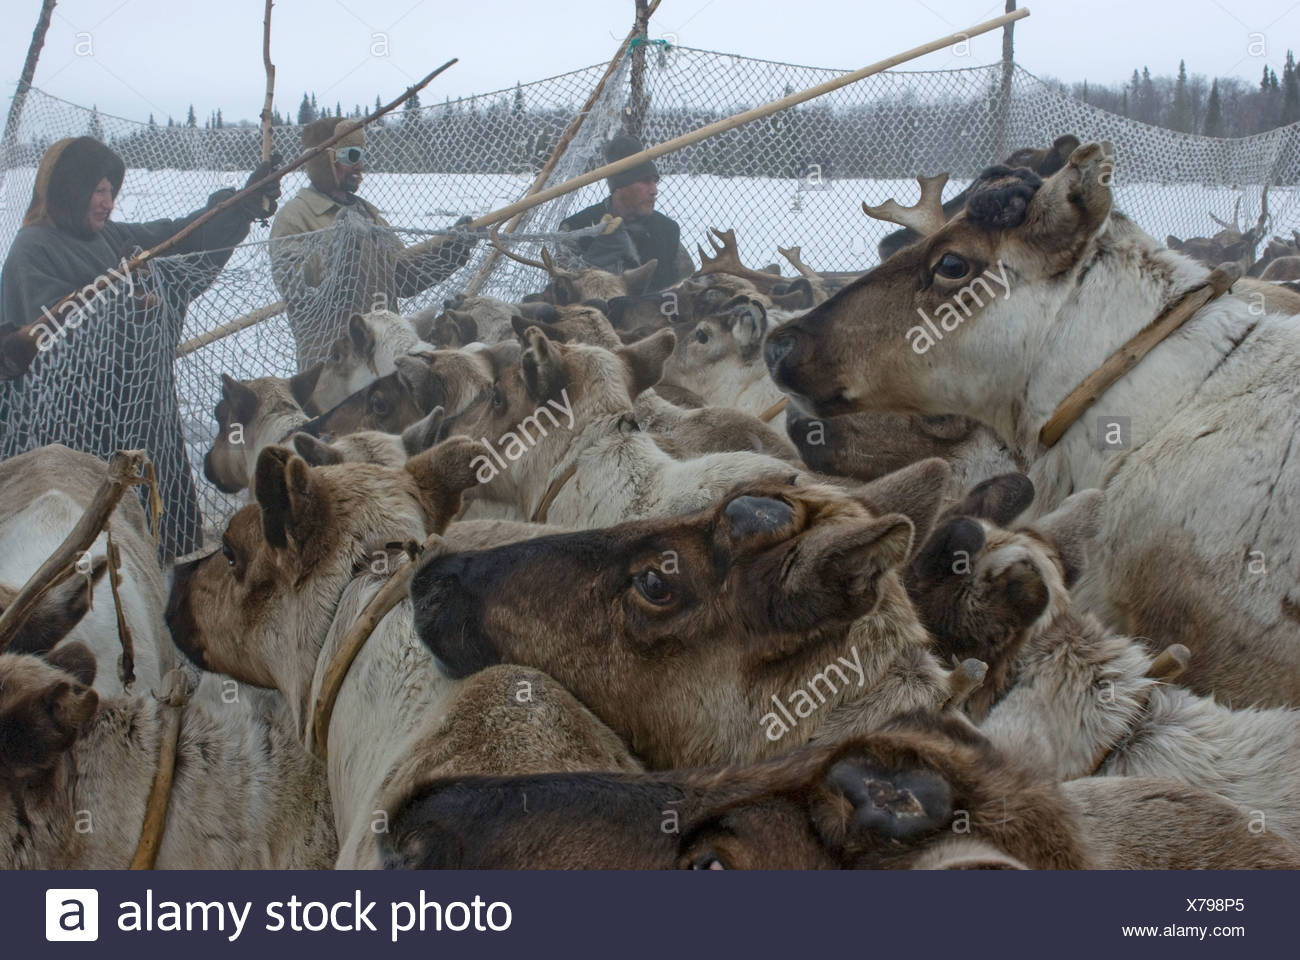 Animal Crush Komi Reindeer Herders Hold Up Temporary Pen Against Crush Of